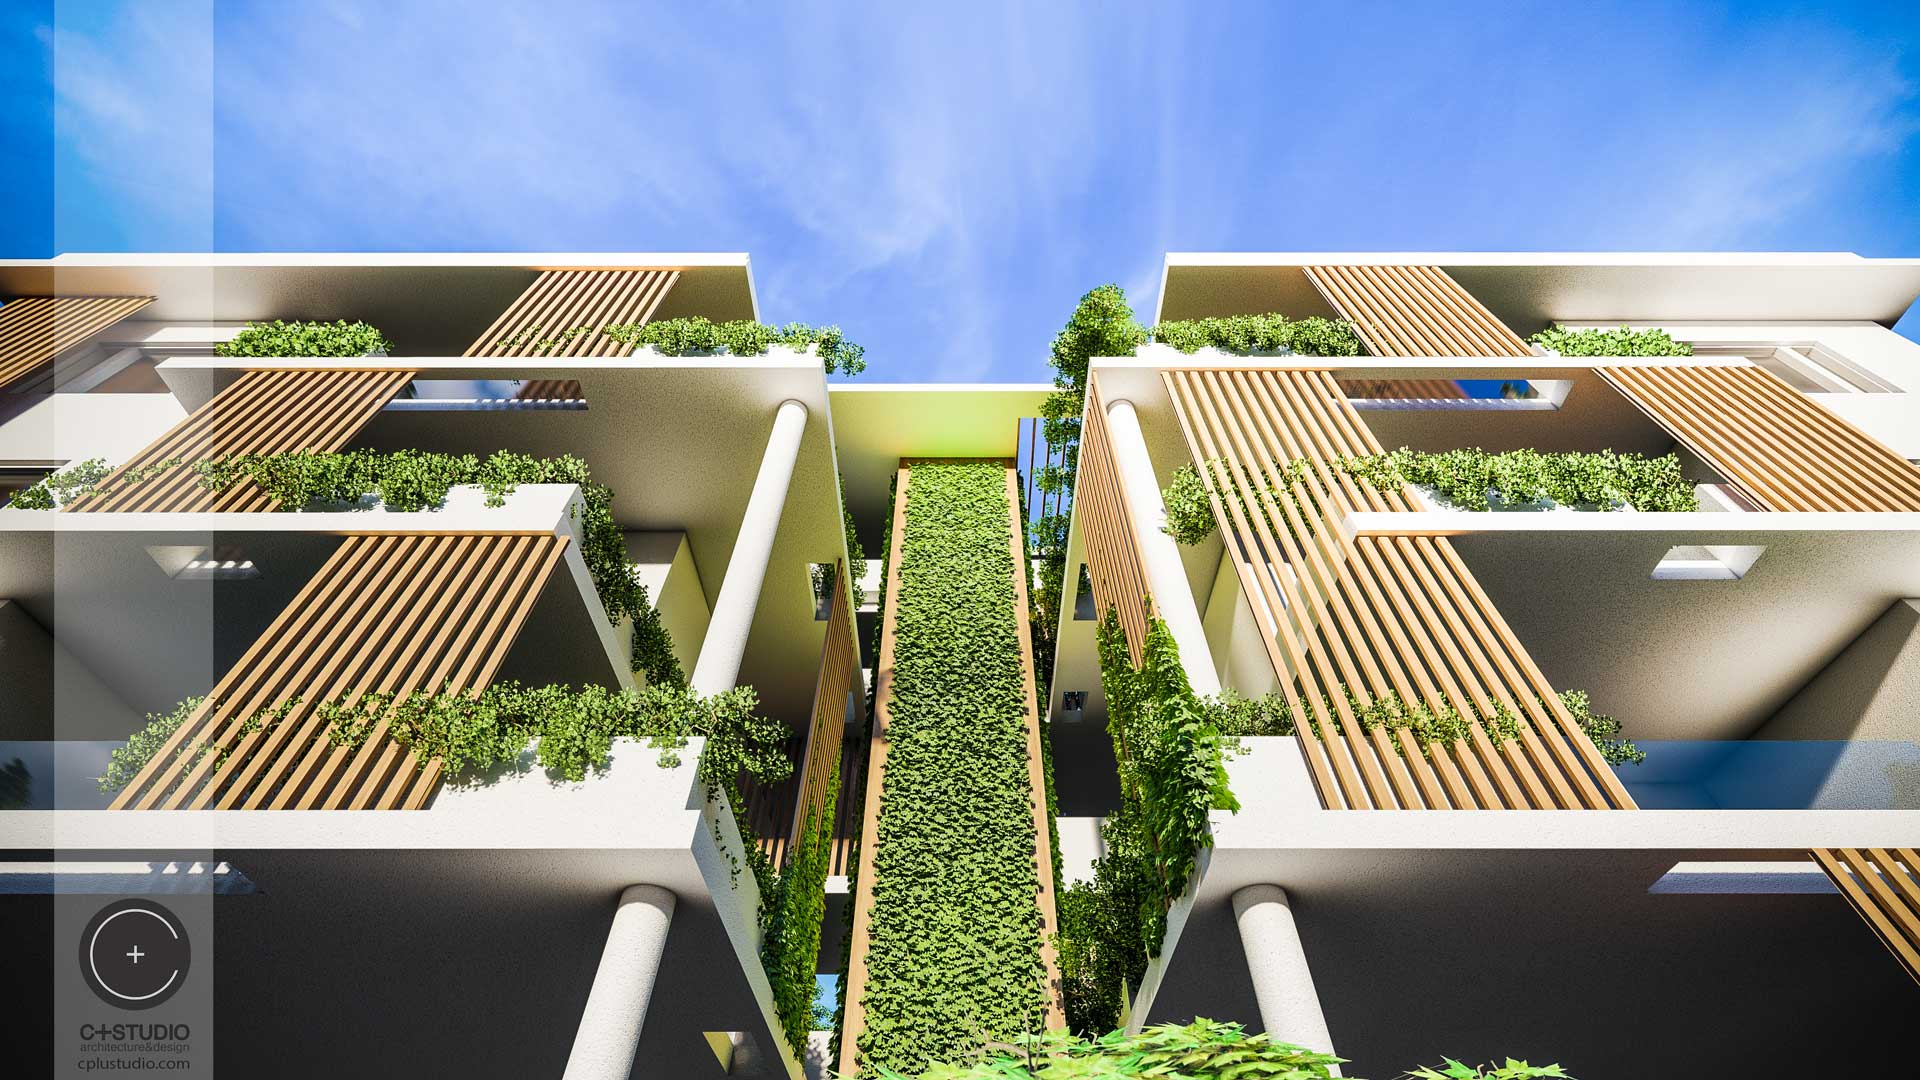 ZENONOS RESIDENTIAL APARTMENT BUILDING ARCHITECTURE DESIGN ...